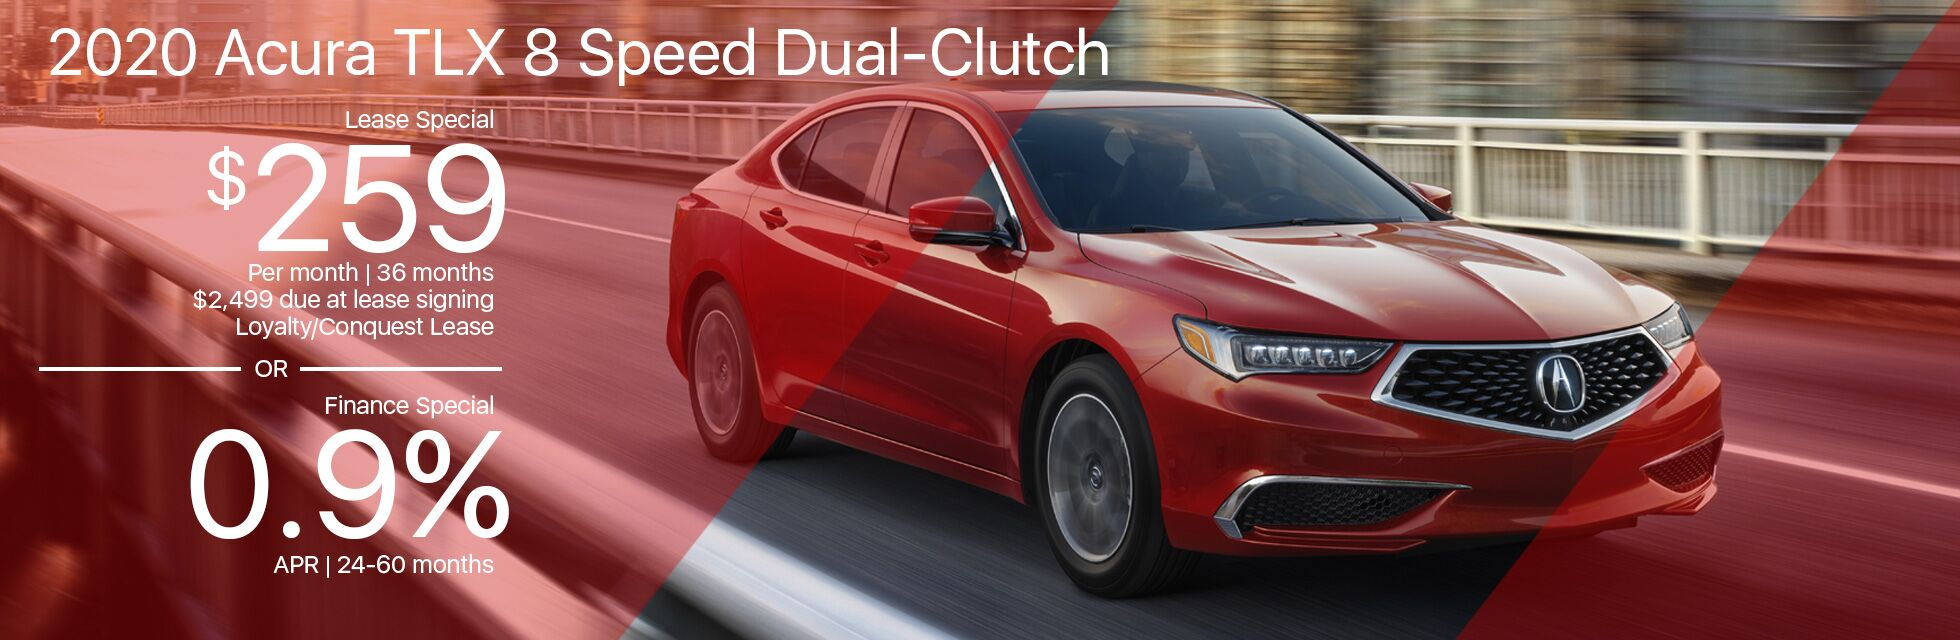 2020 Acura TLX Lease Finance Special Marin Acura 030720